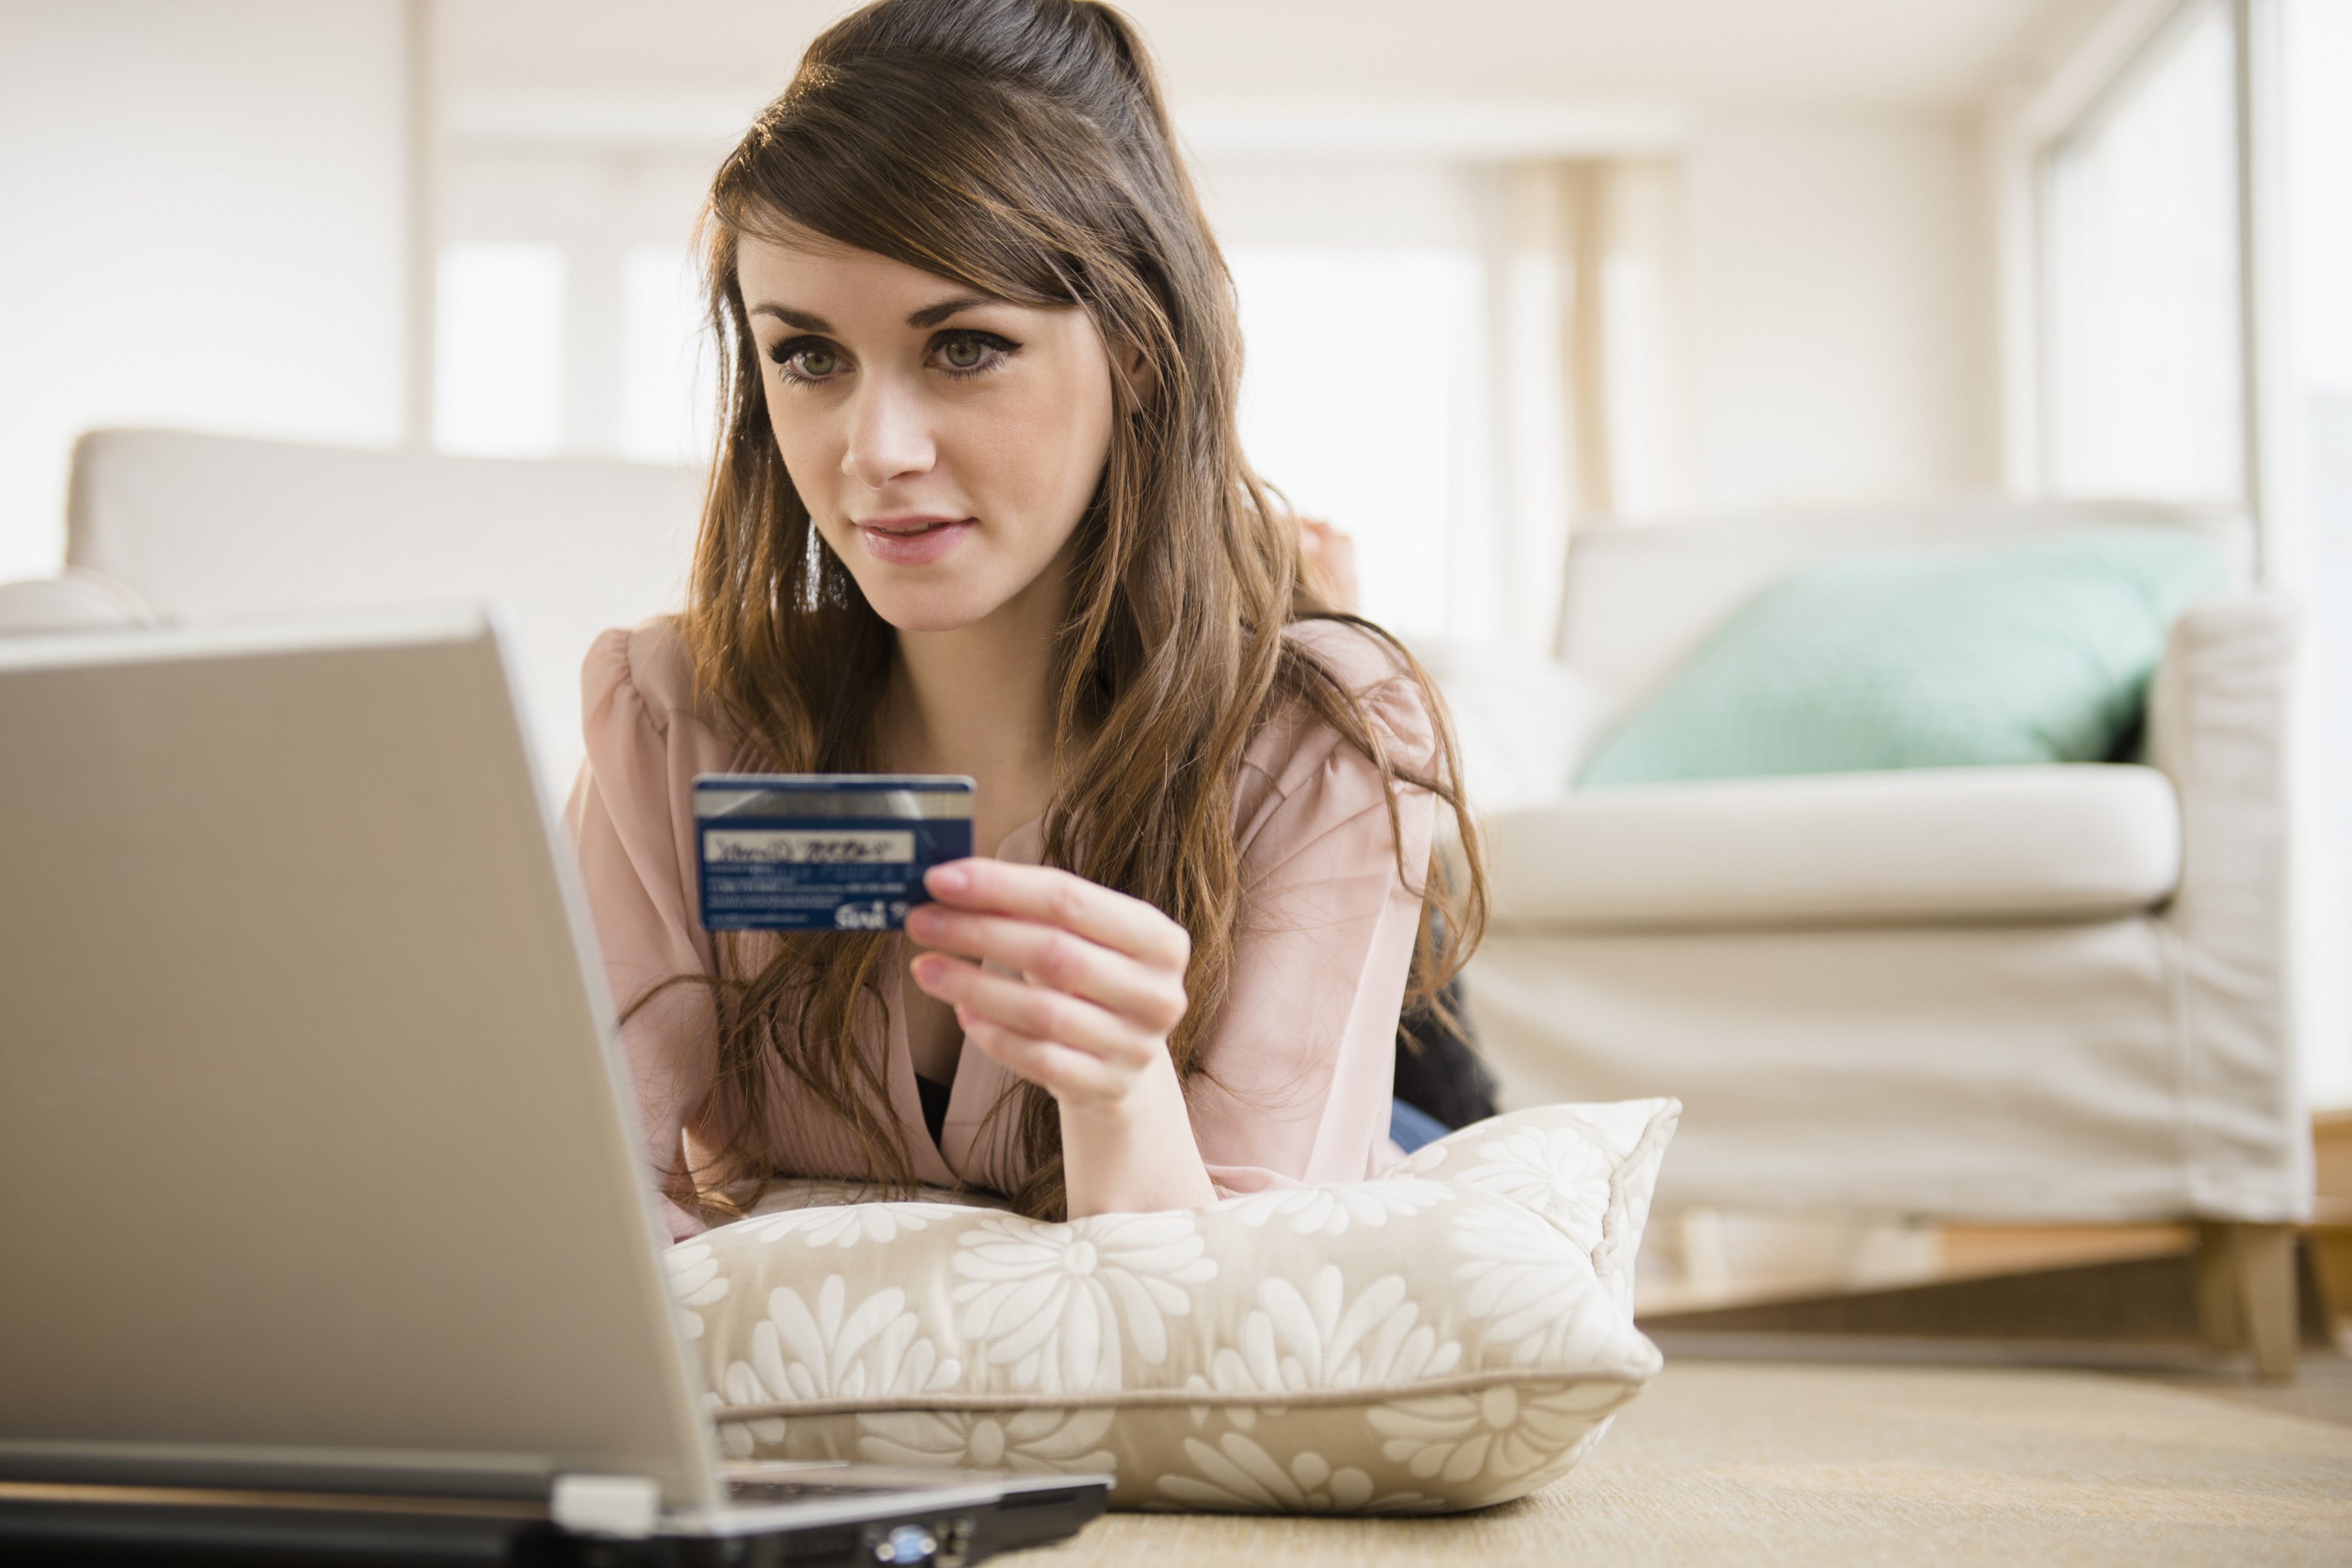 USA, New Jersey, Jersey City, Young woman shopping online with credit card